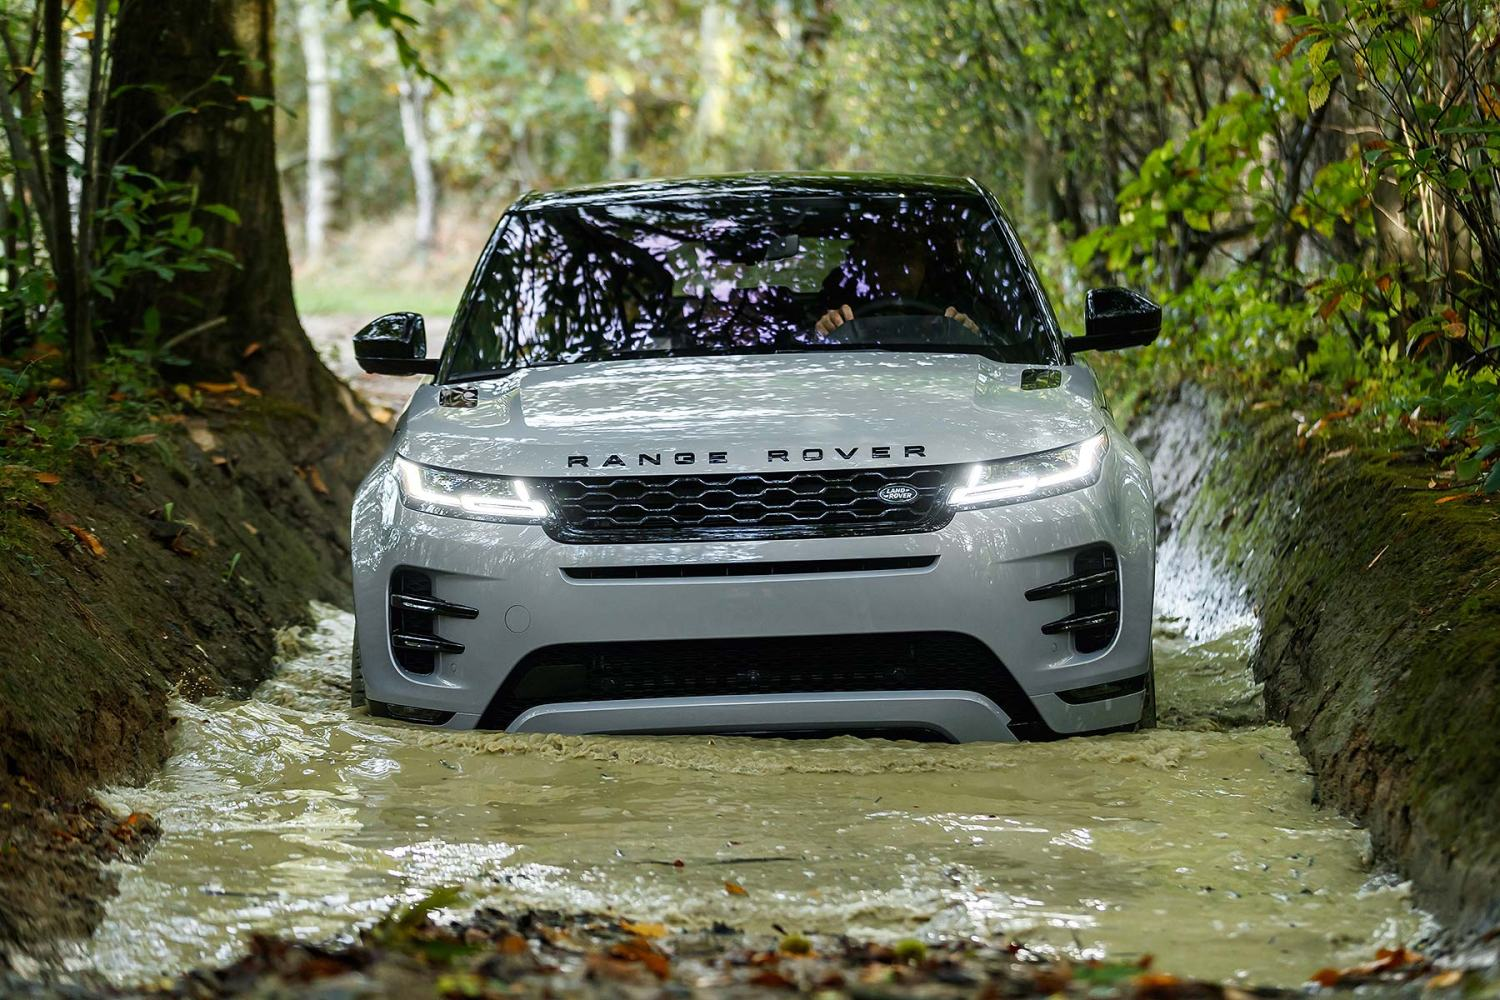 New 2019 Range Rover Evoque revealed – and ordering is open NOW